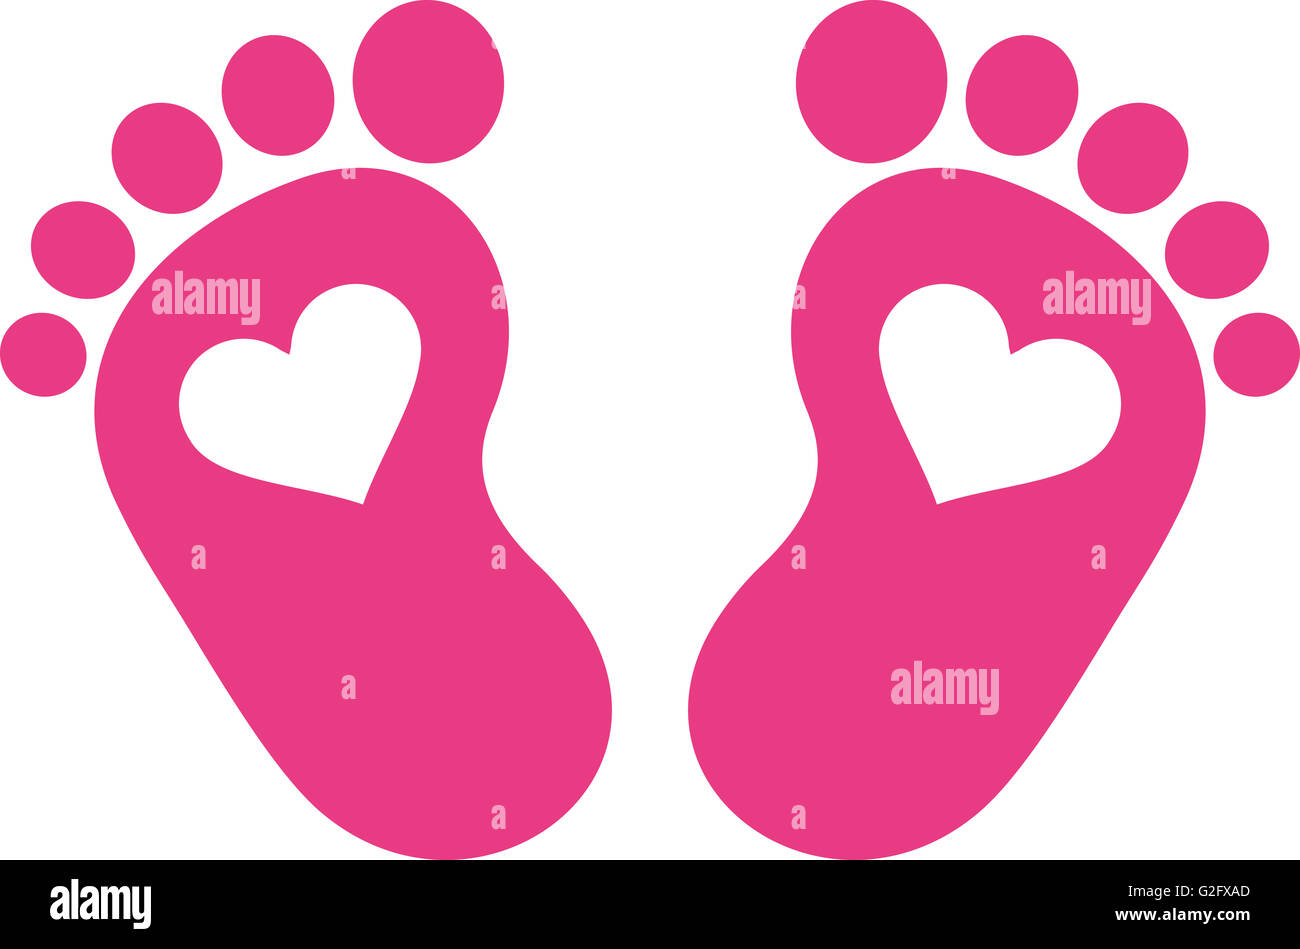 Print For Baby Stock Photos & Print For Baby Stock Images - Alamy